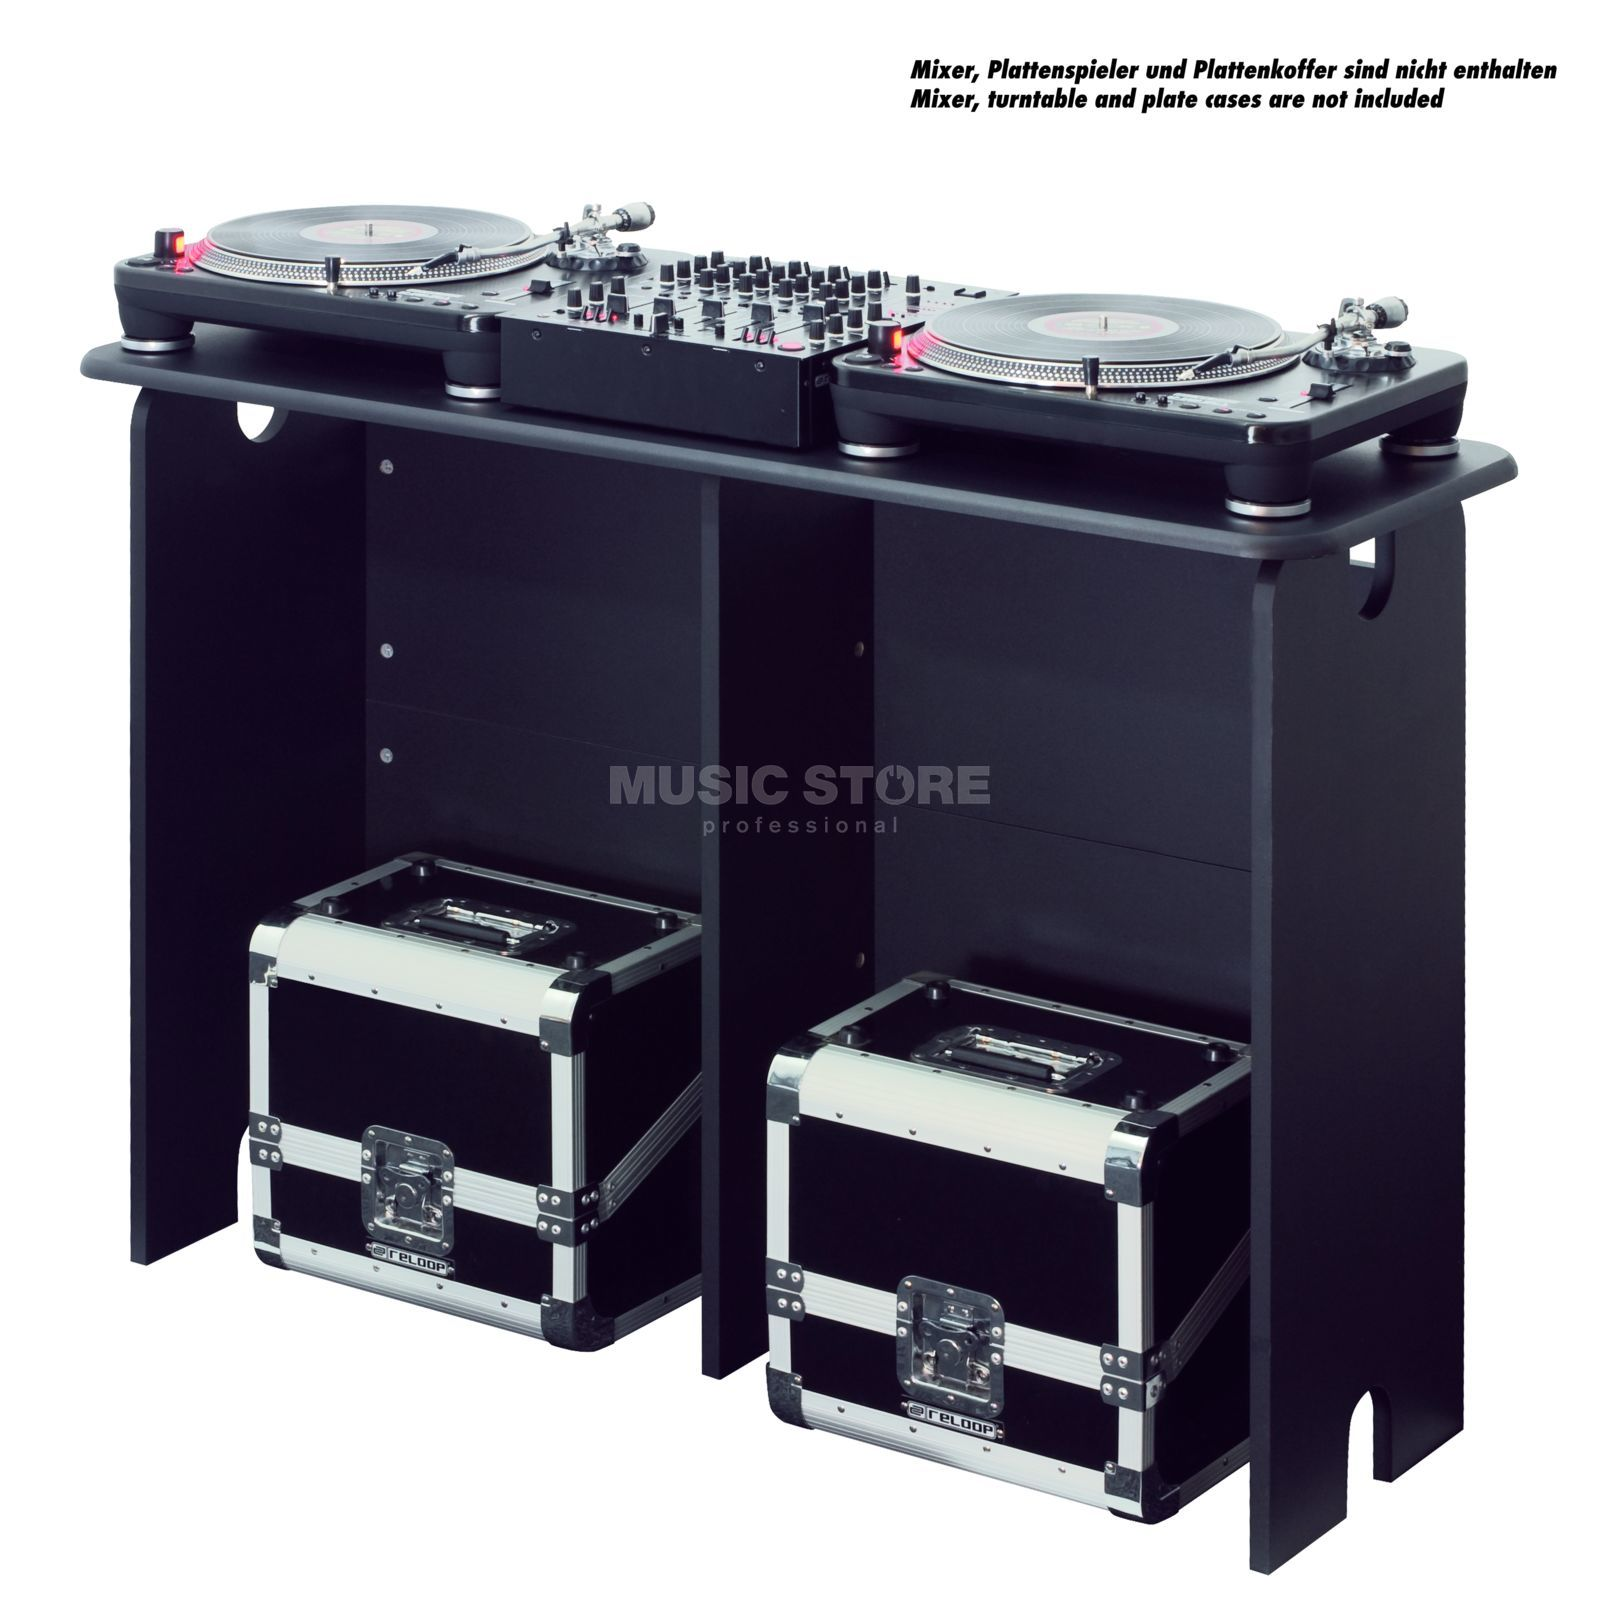 Glorious Table Mix Station black DJ  Image du produit